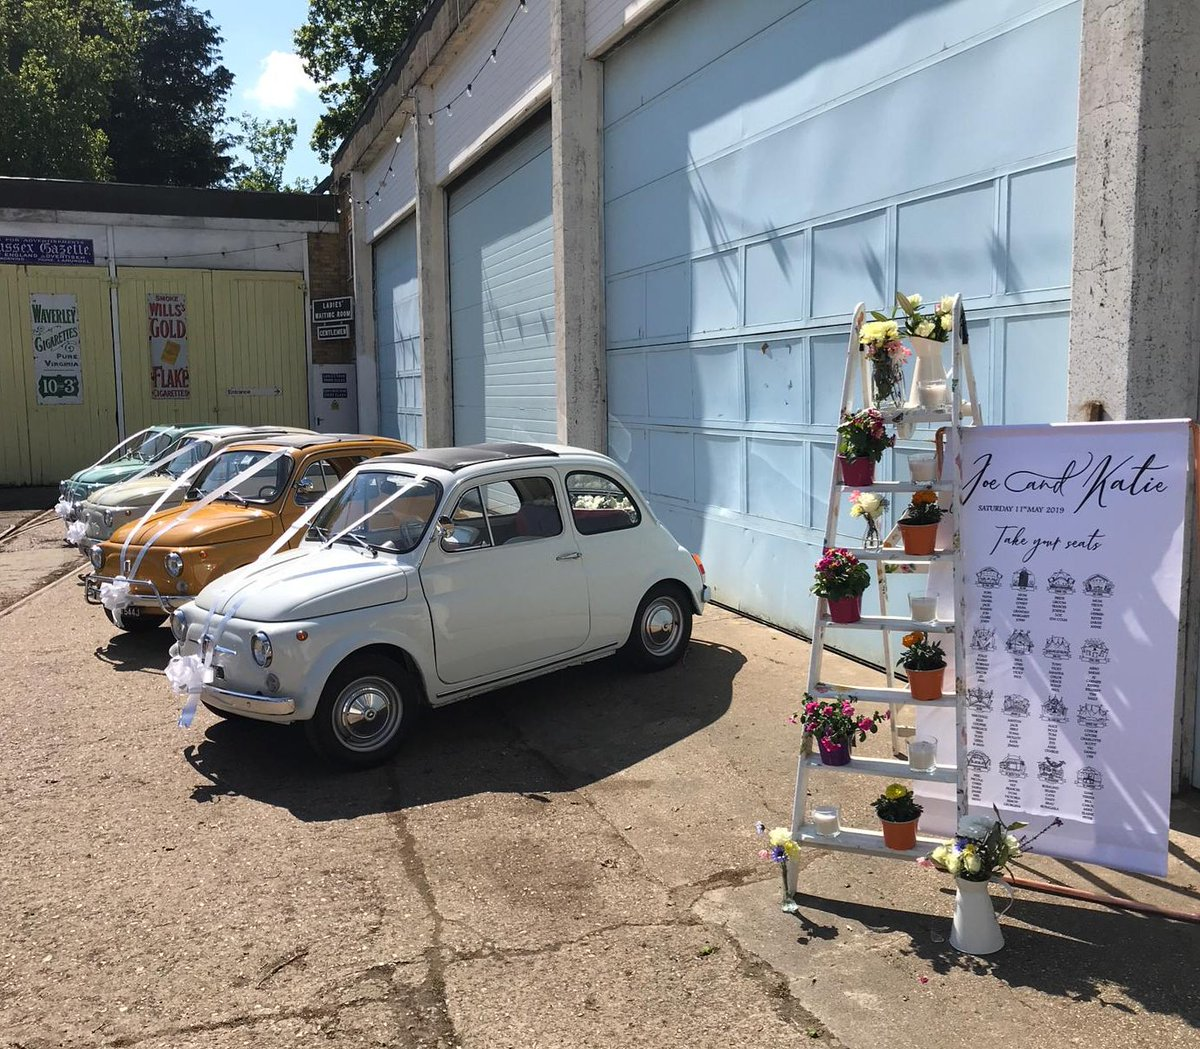 .@FawleyHill is a wonderful venue for a wedding if you're looking for something a bit different. It even has a railway! #fiat500